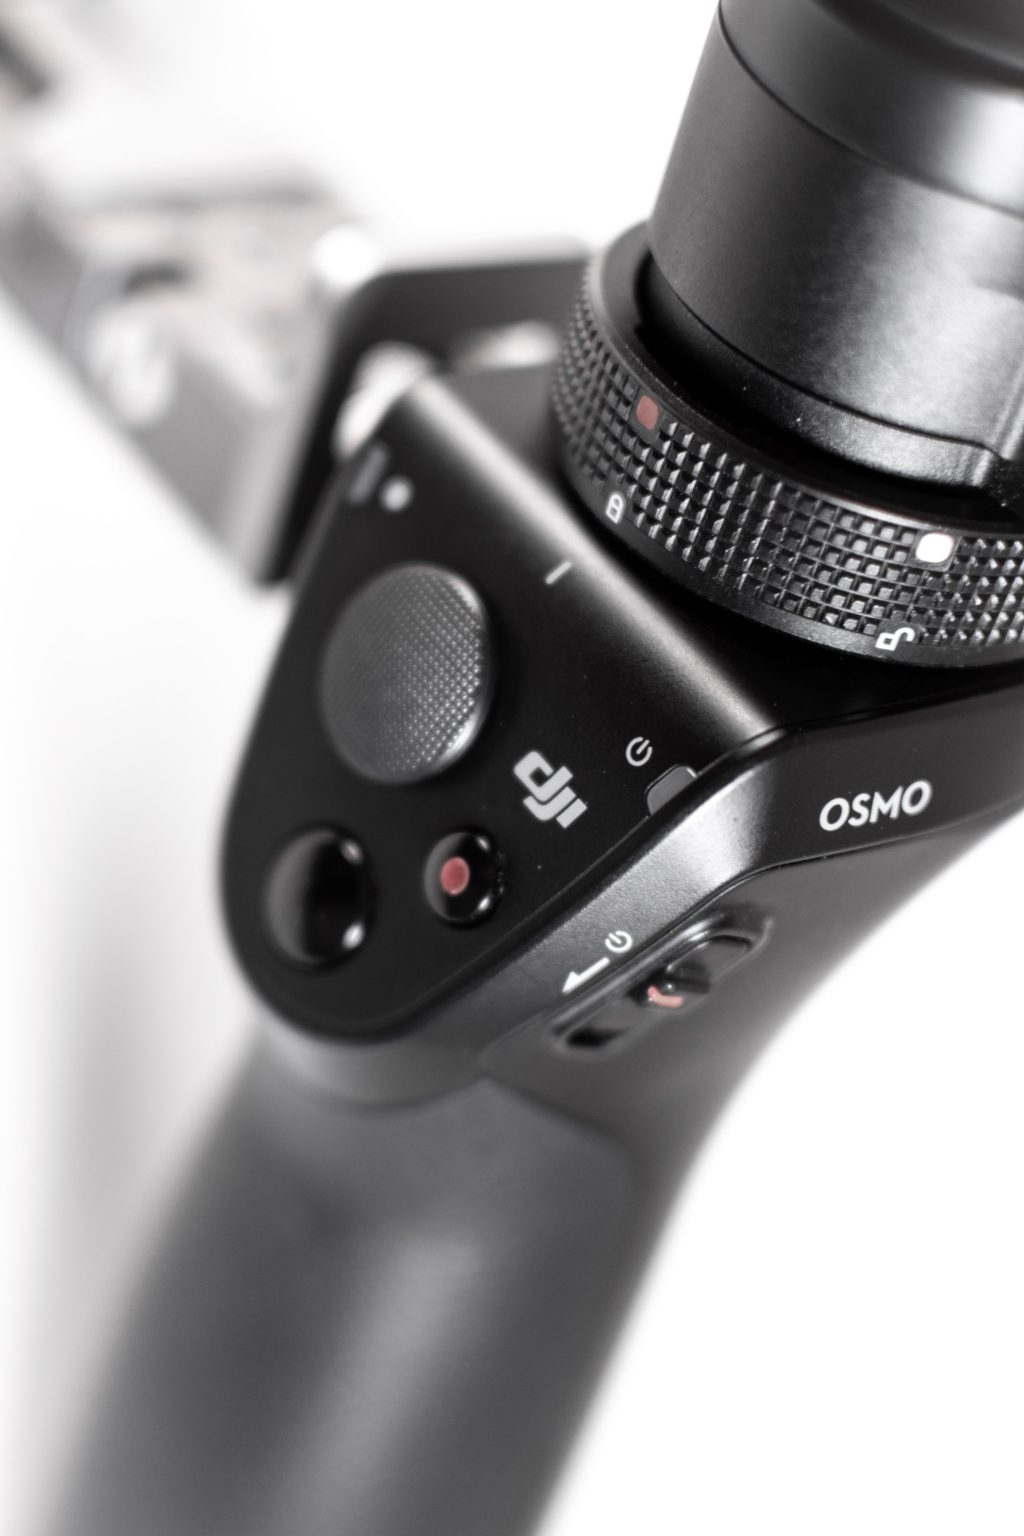 Close shot of DJI Osmo